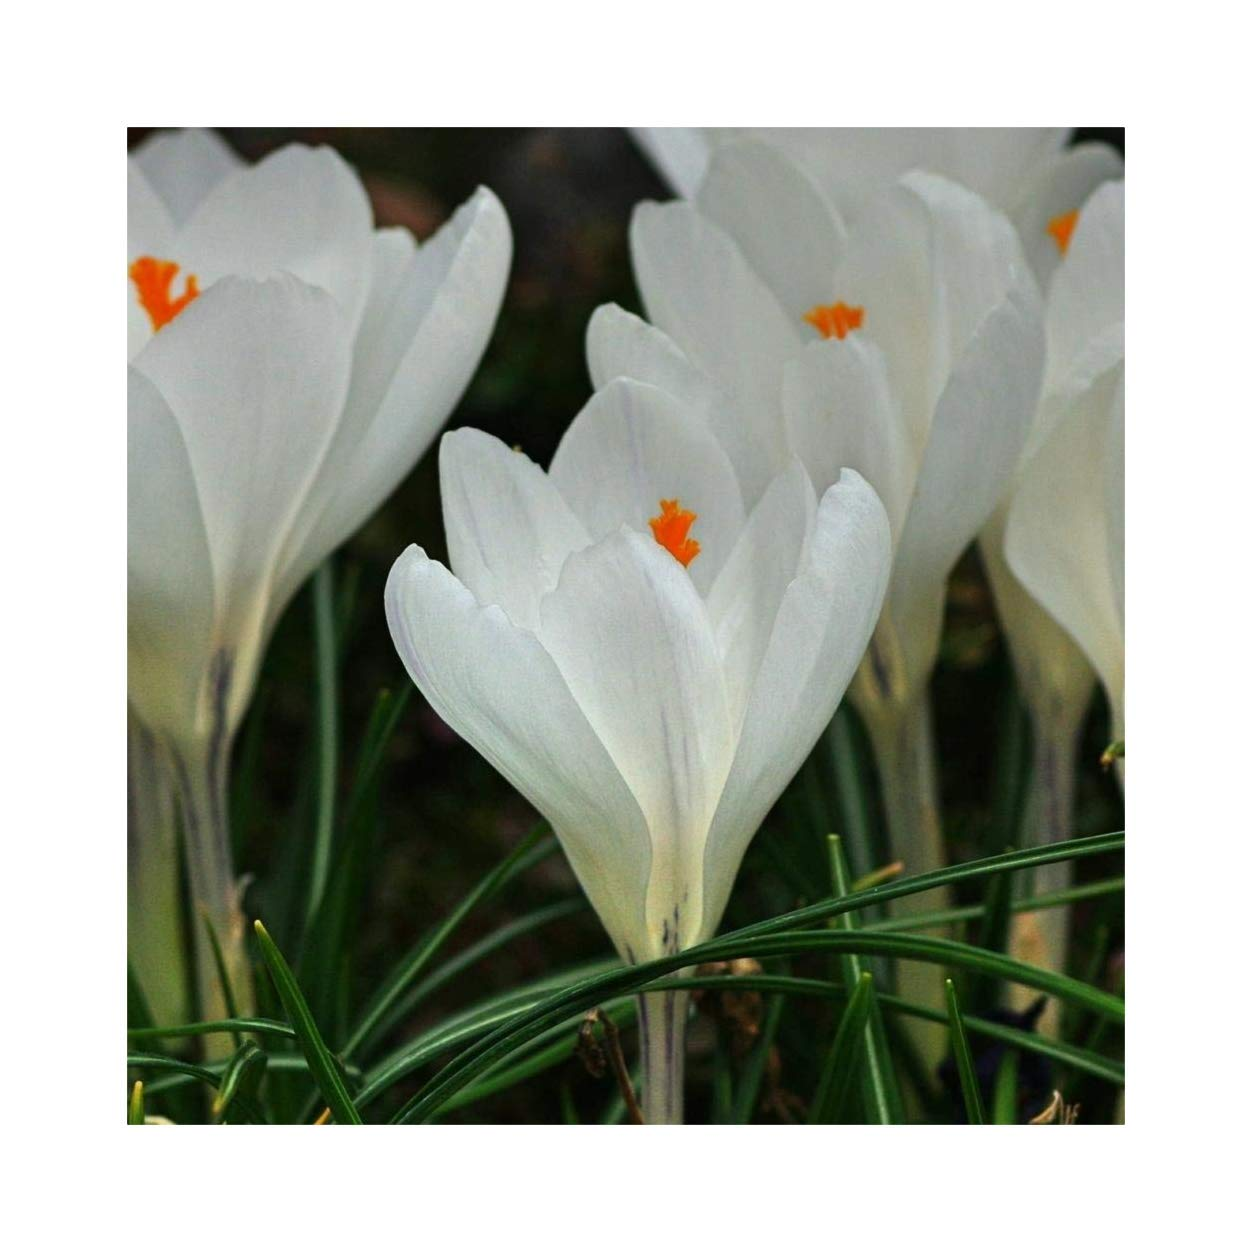 100 Crocus vernus Jeanne d'Arc Large Spring Flowering Bulbs White by Plug Plants Express Limited